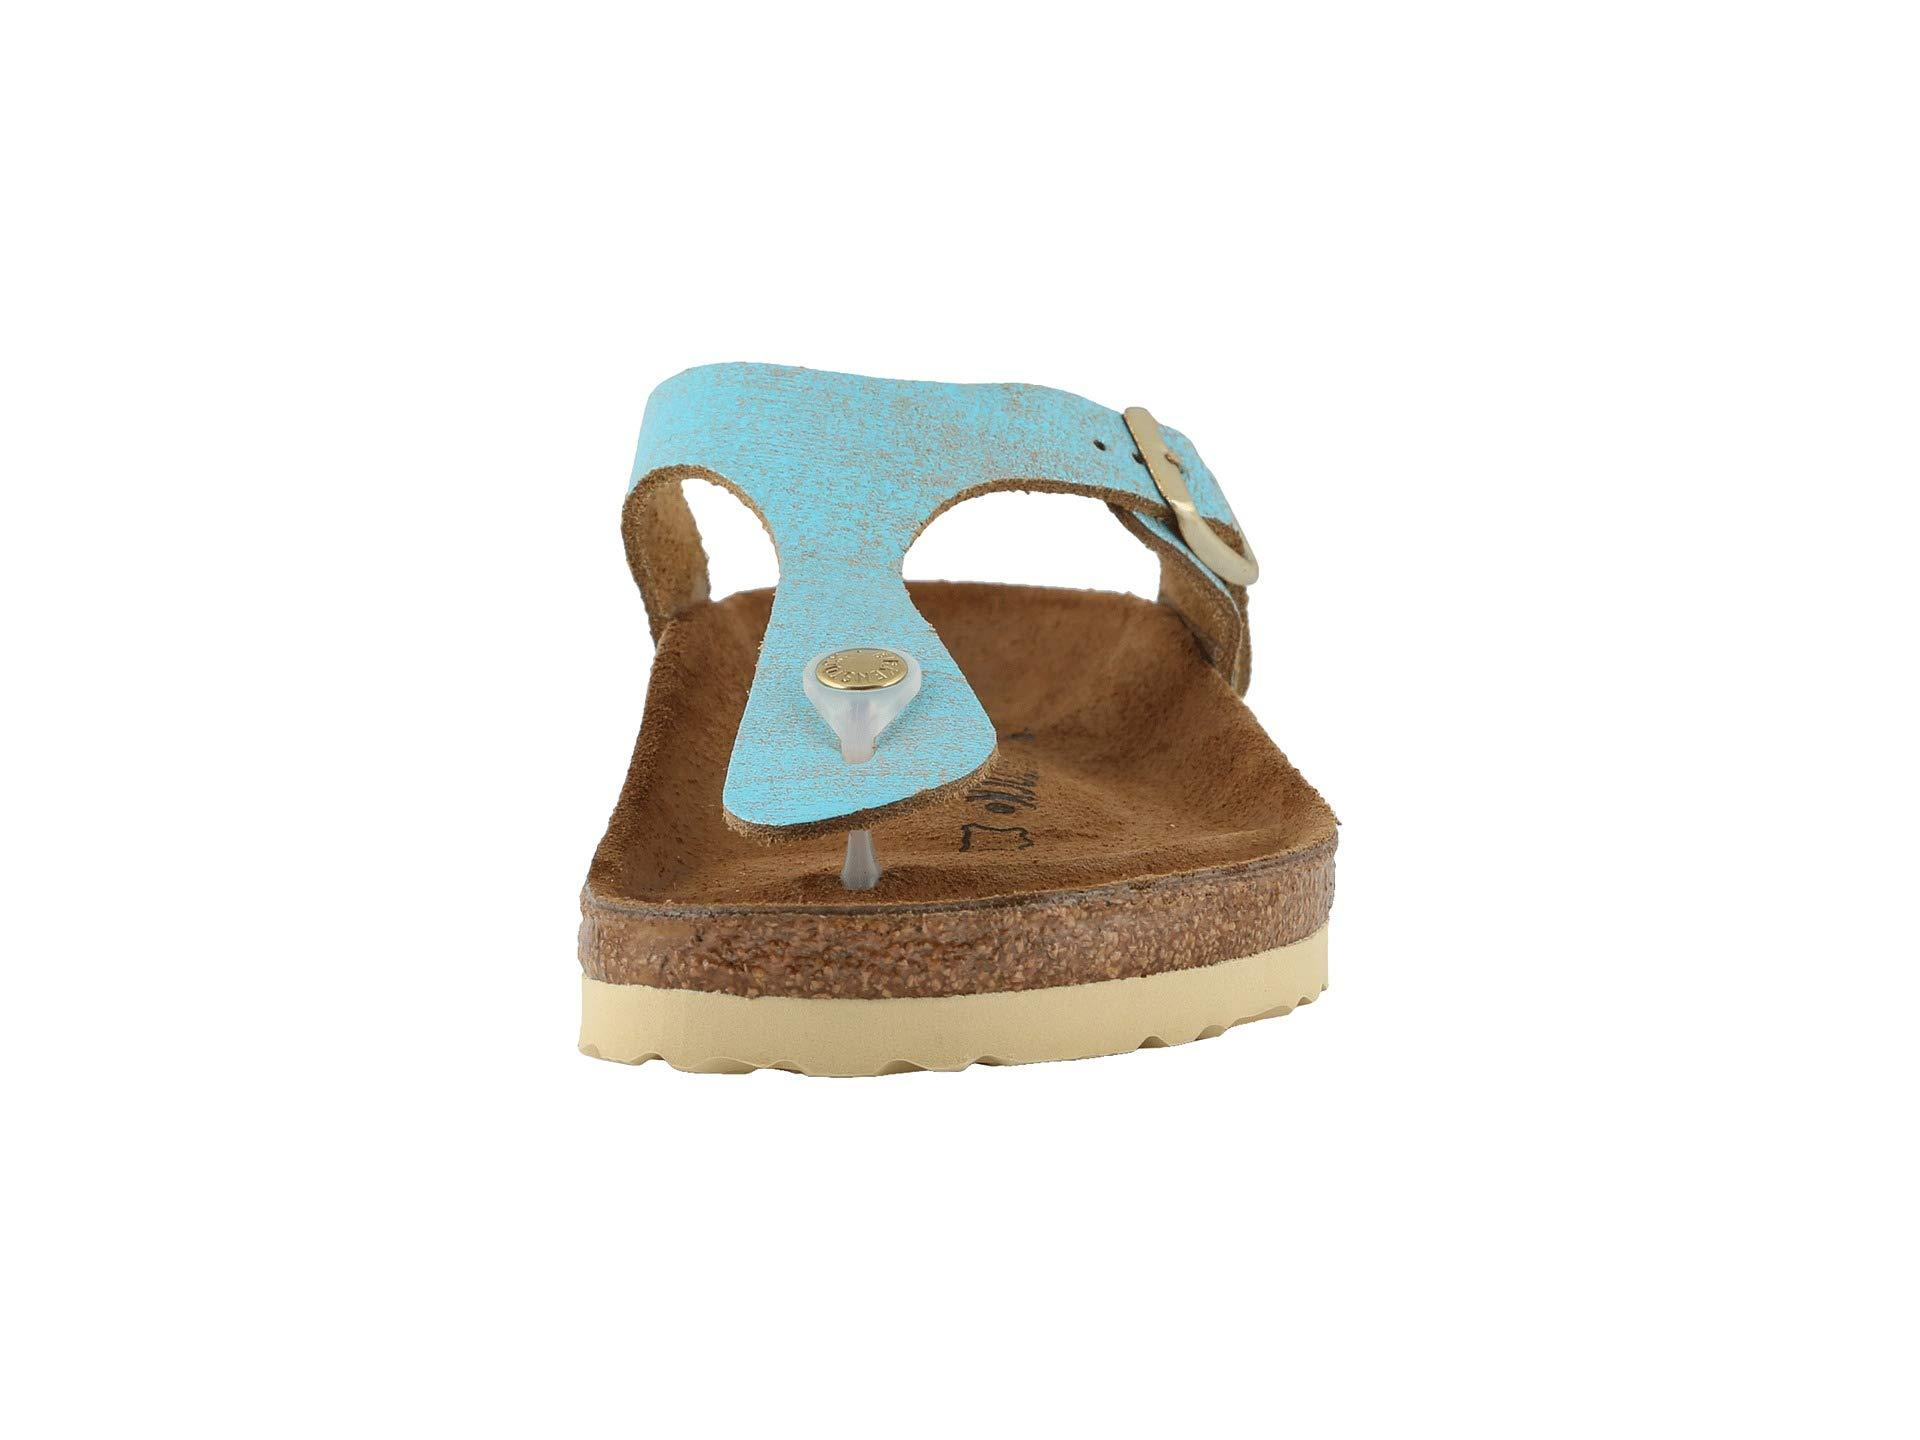 a01a9238cae Birkenstock - Gizeh - Leather (washed Metallic Aqua) Women s Sandals -  Lyst. View fullscreen